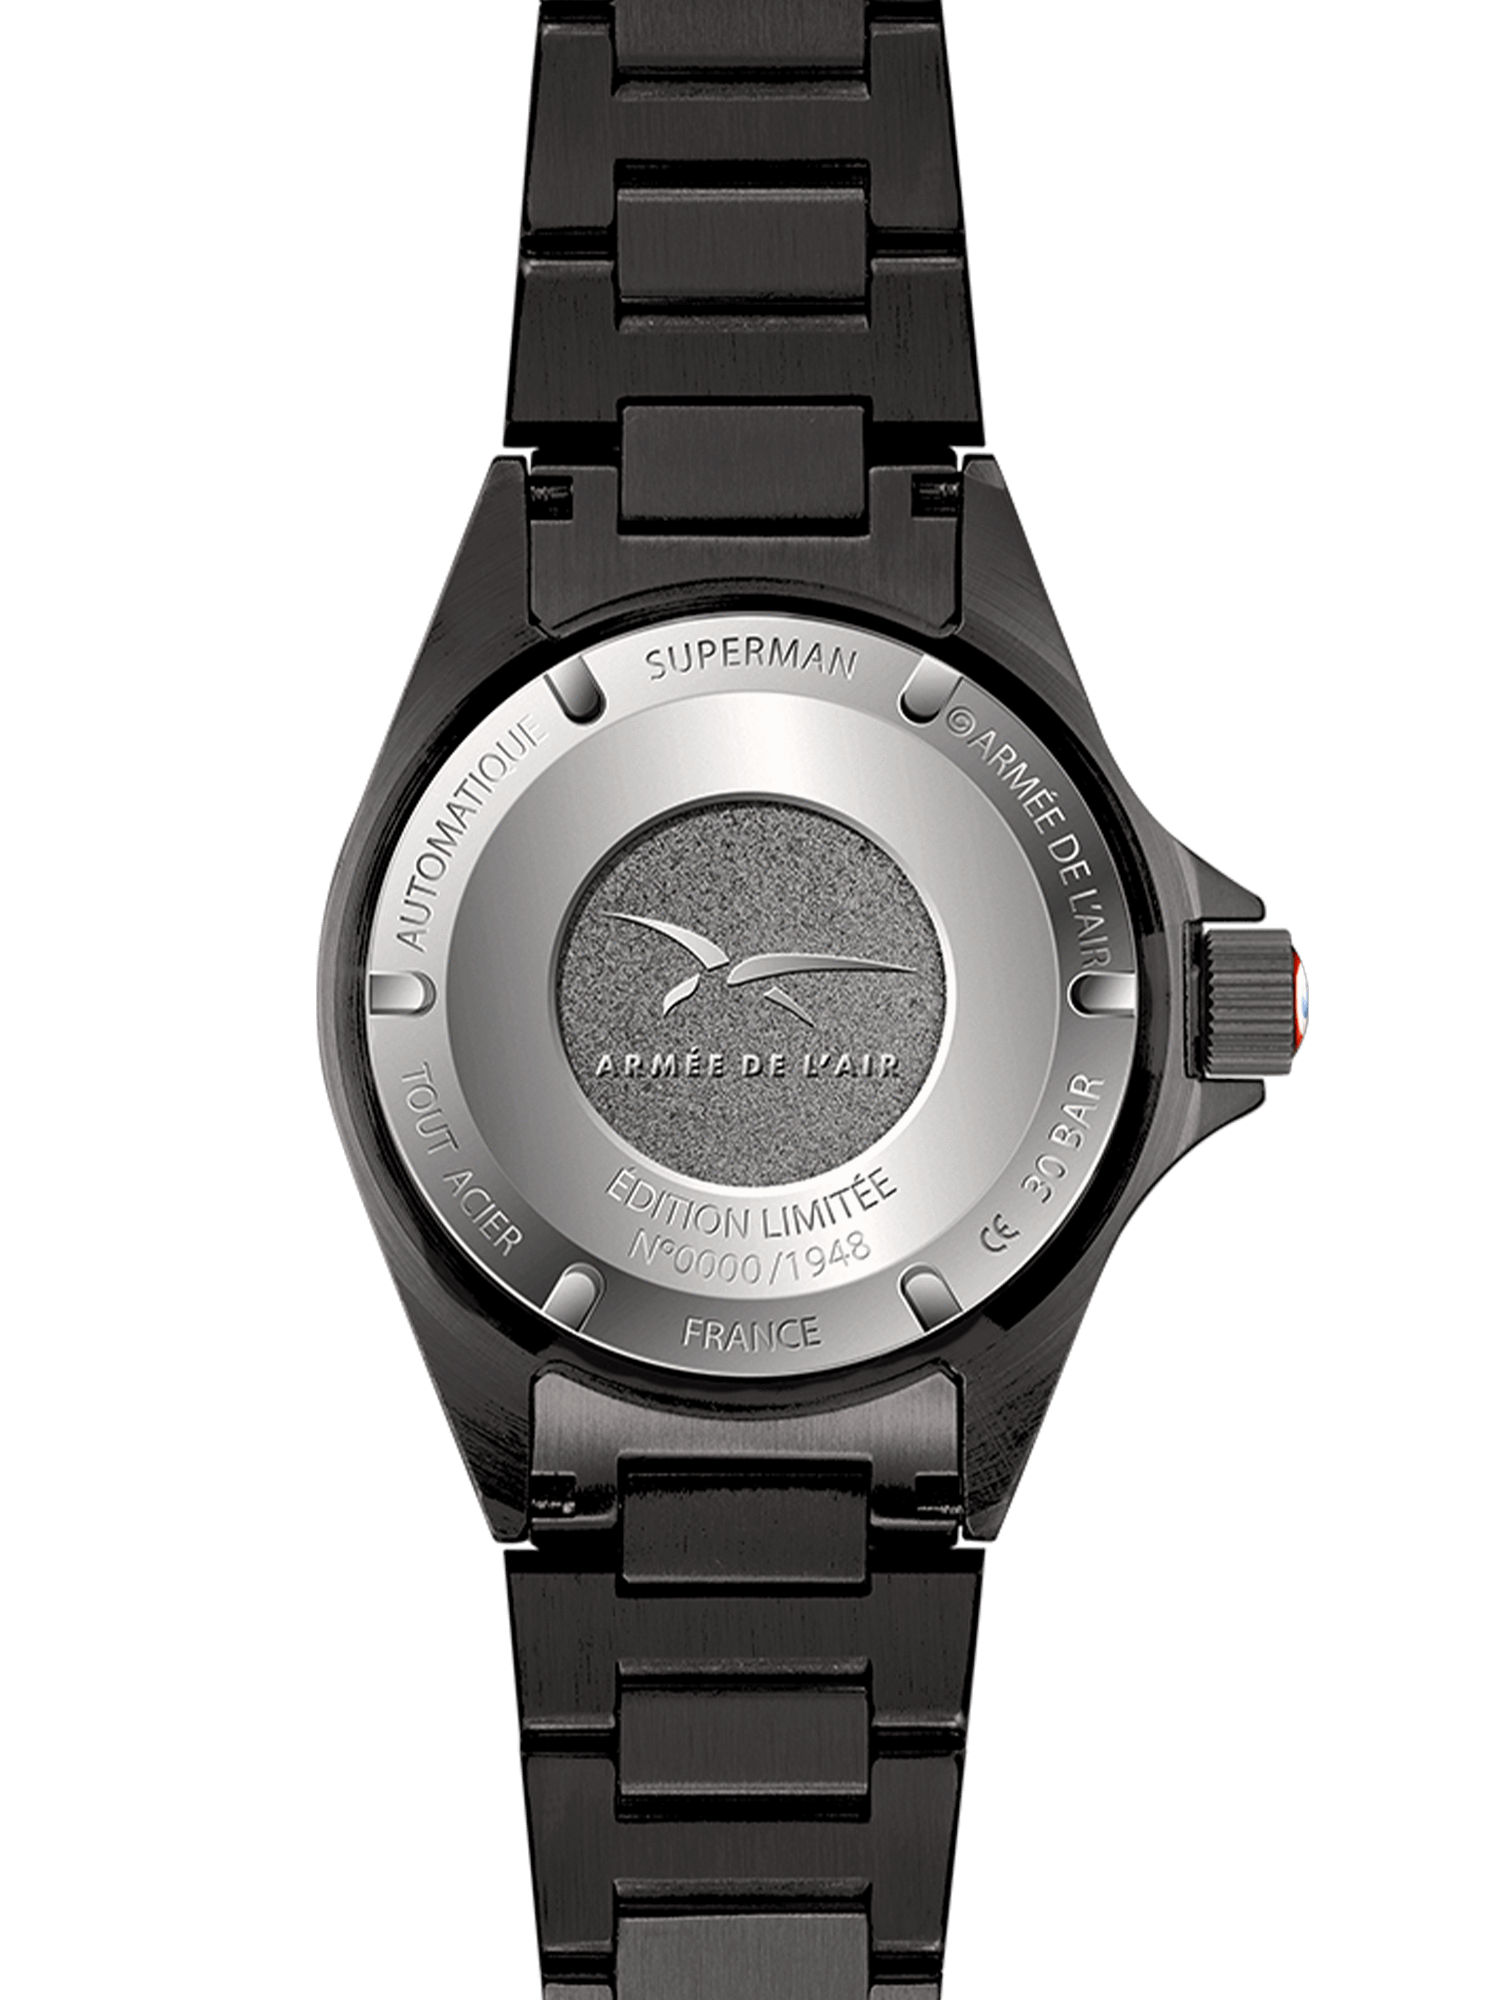 YEMA Superman French Air Force Black Limited Edition, Steel casebackFrench Air Force crest embossed.